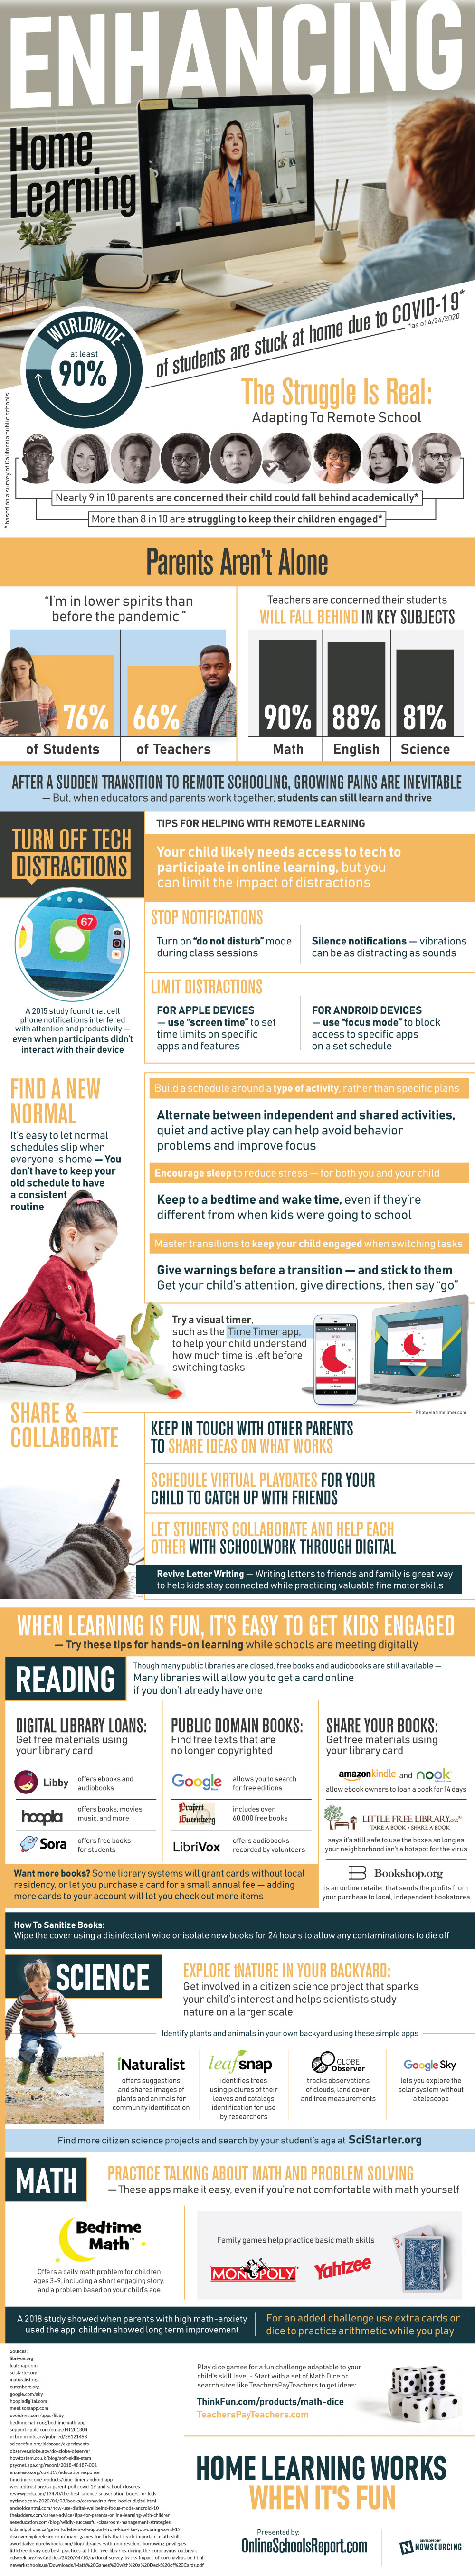 Rethinking Home Learning - Infographic